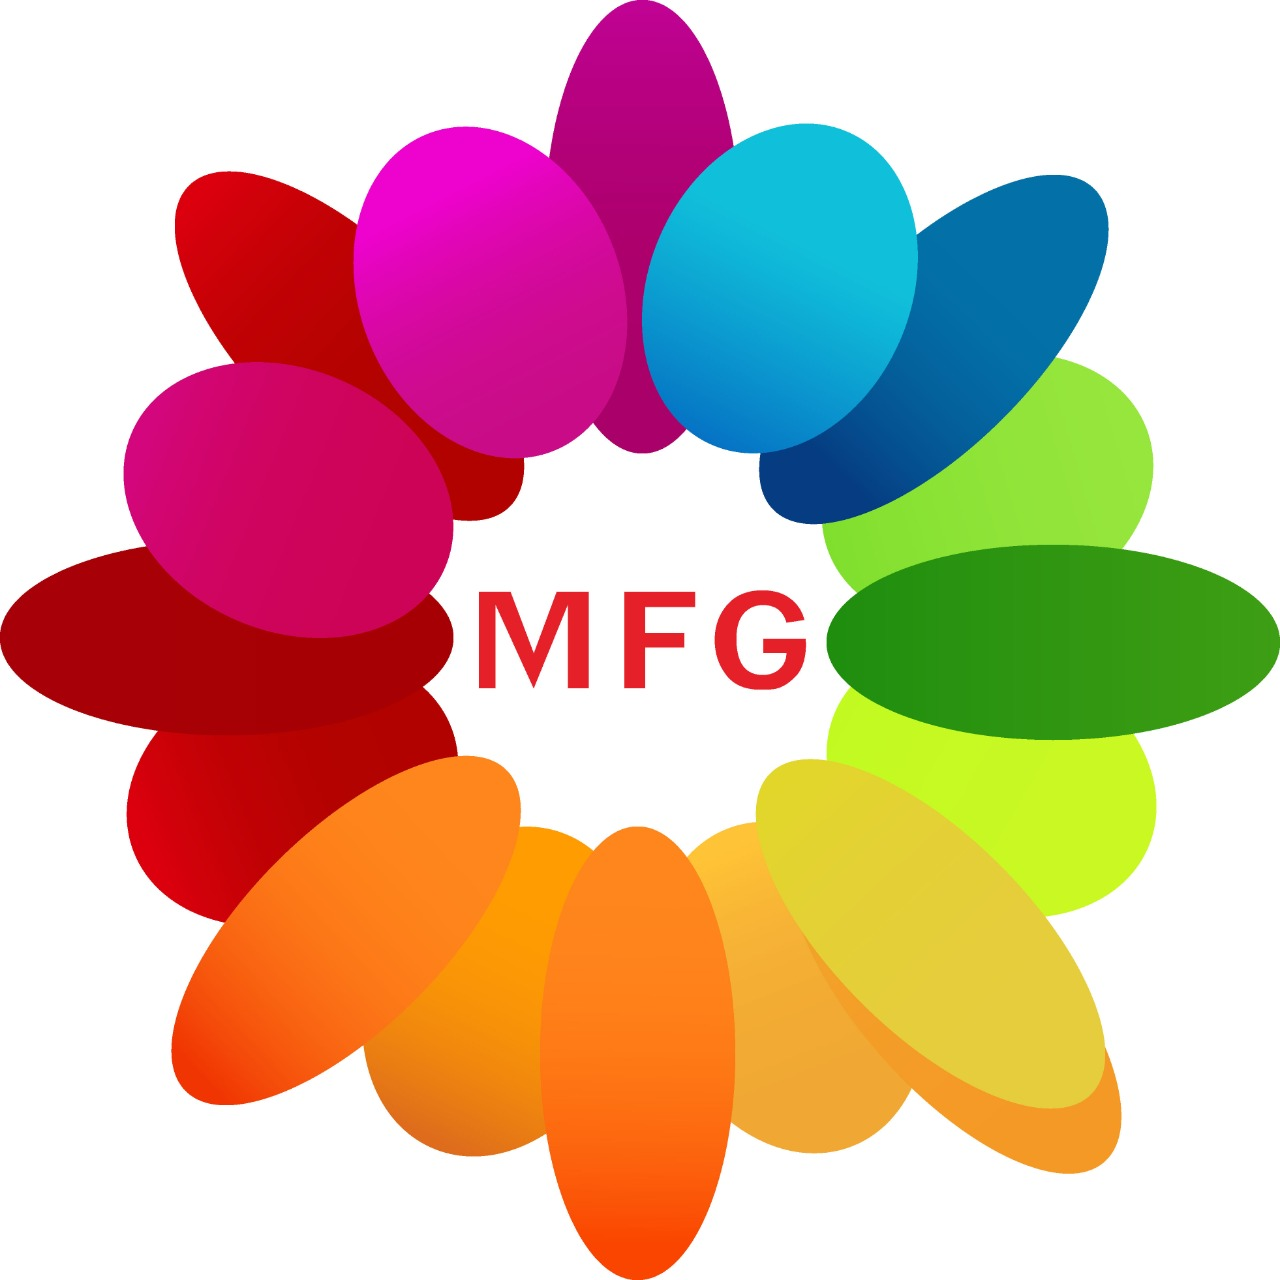 Flowers and 3 kgs mix fruit basket Myflower t